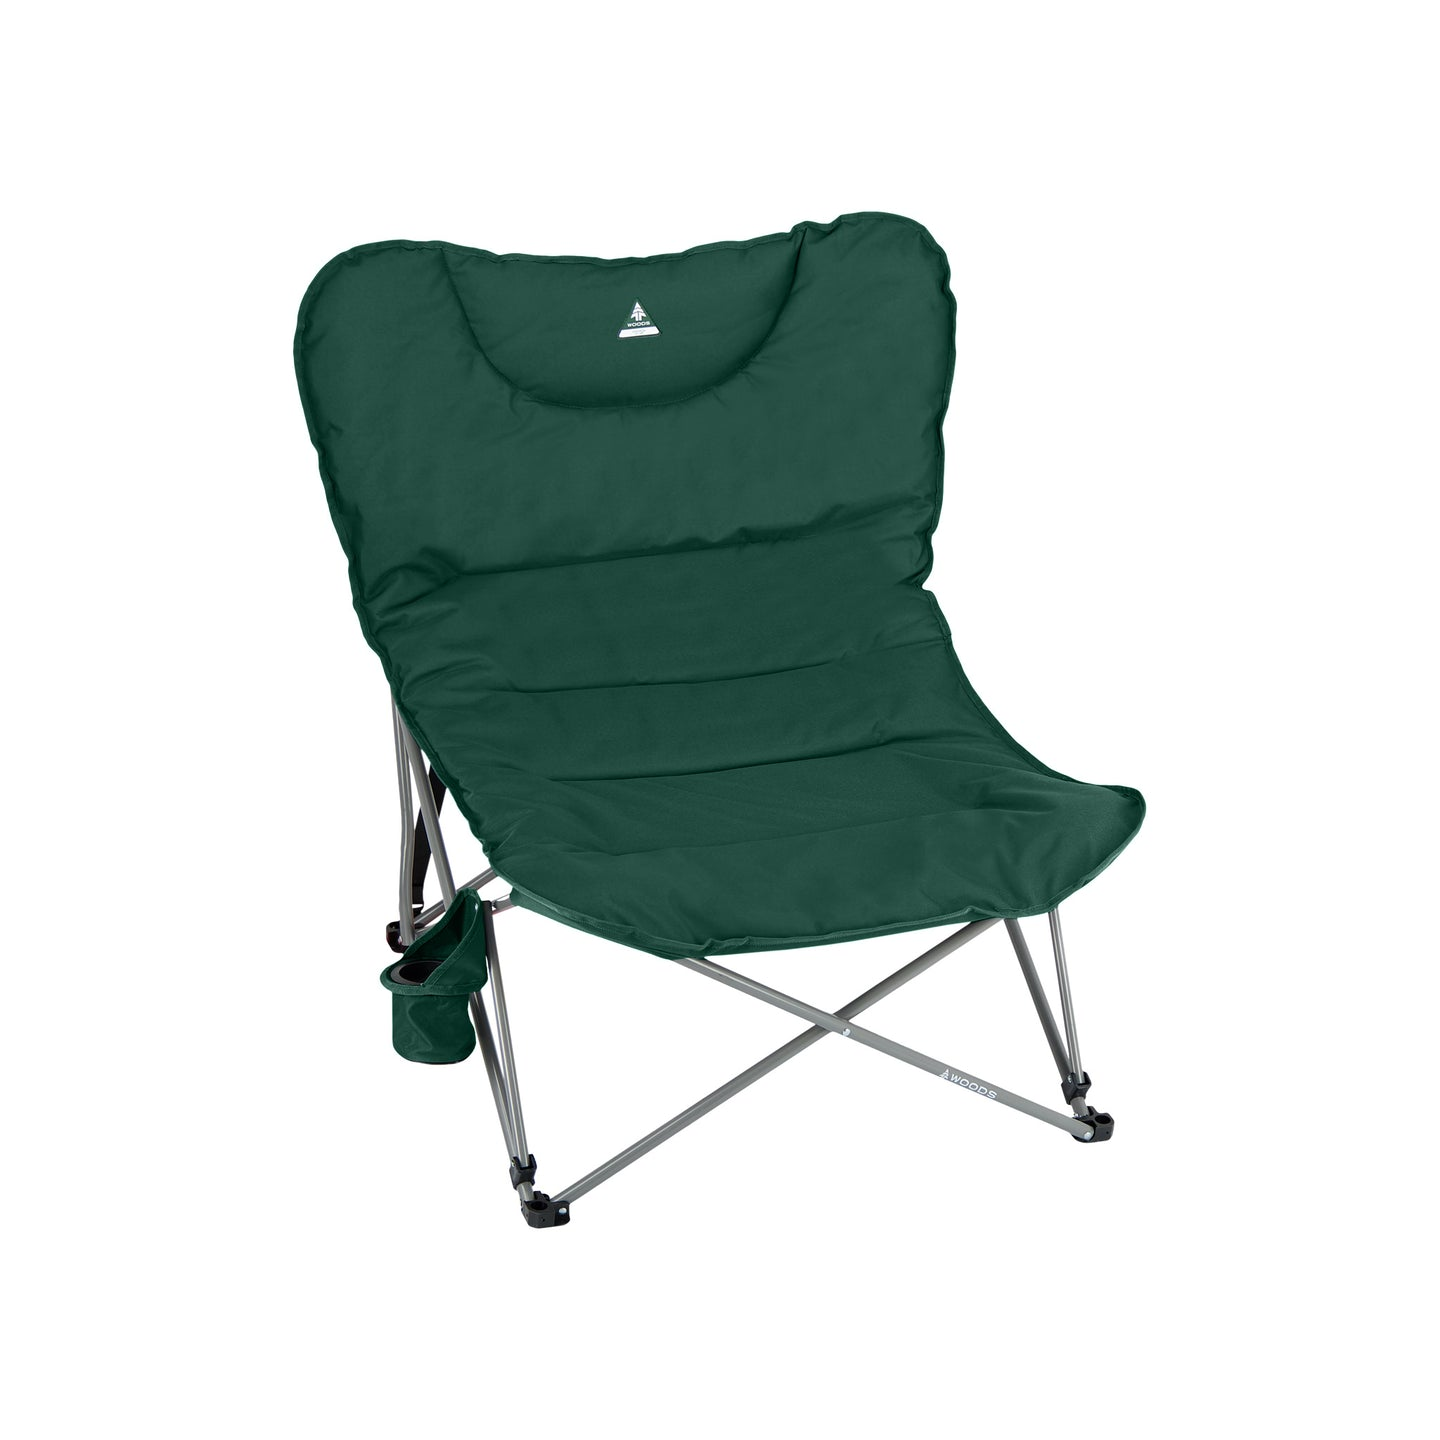 Woods Mammoth Folding Padded Camping Chair - Green